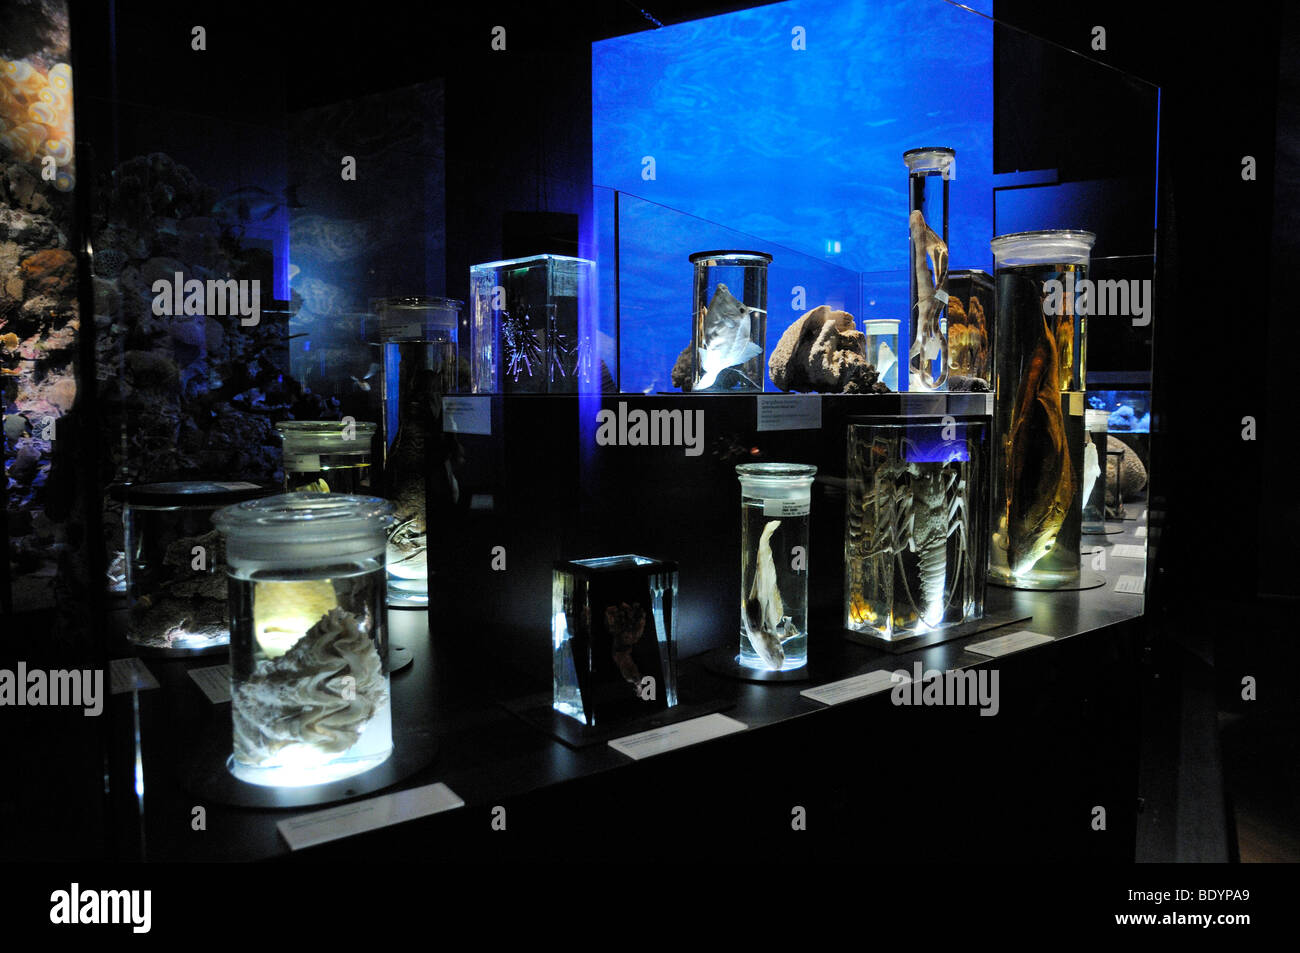 Exhibits, preserved in glass, Coral Reef exhibition, Museum of Man and Nature, Munich, Upper Bavaria, Bavaria, Germany - Stock Image